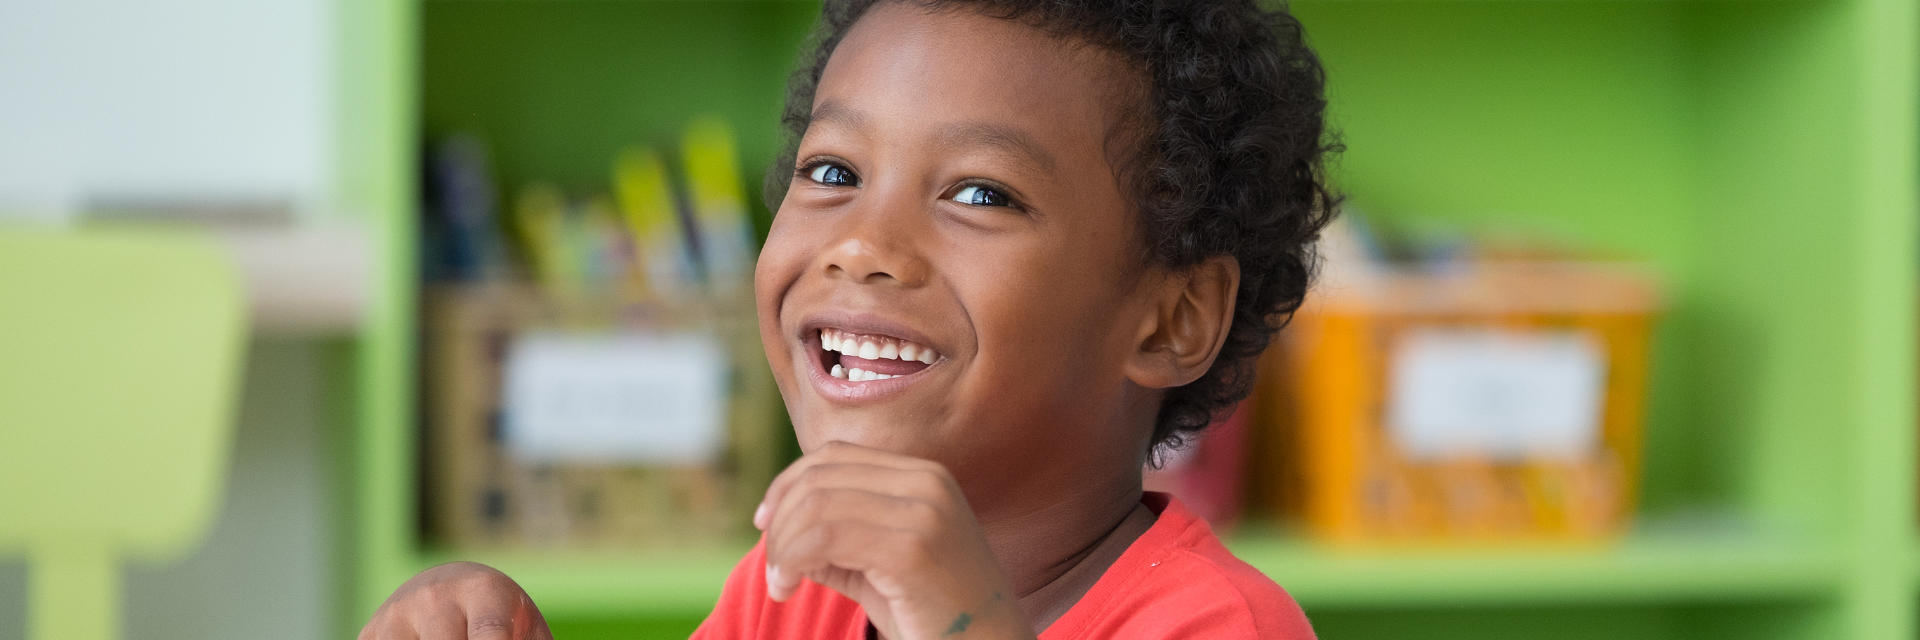 Happy Afro-American little boy showing his teeth in a smile.